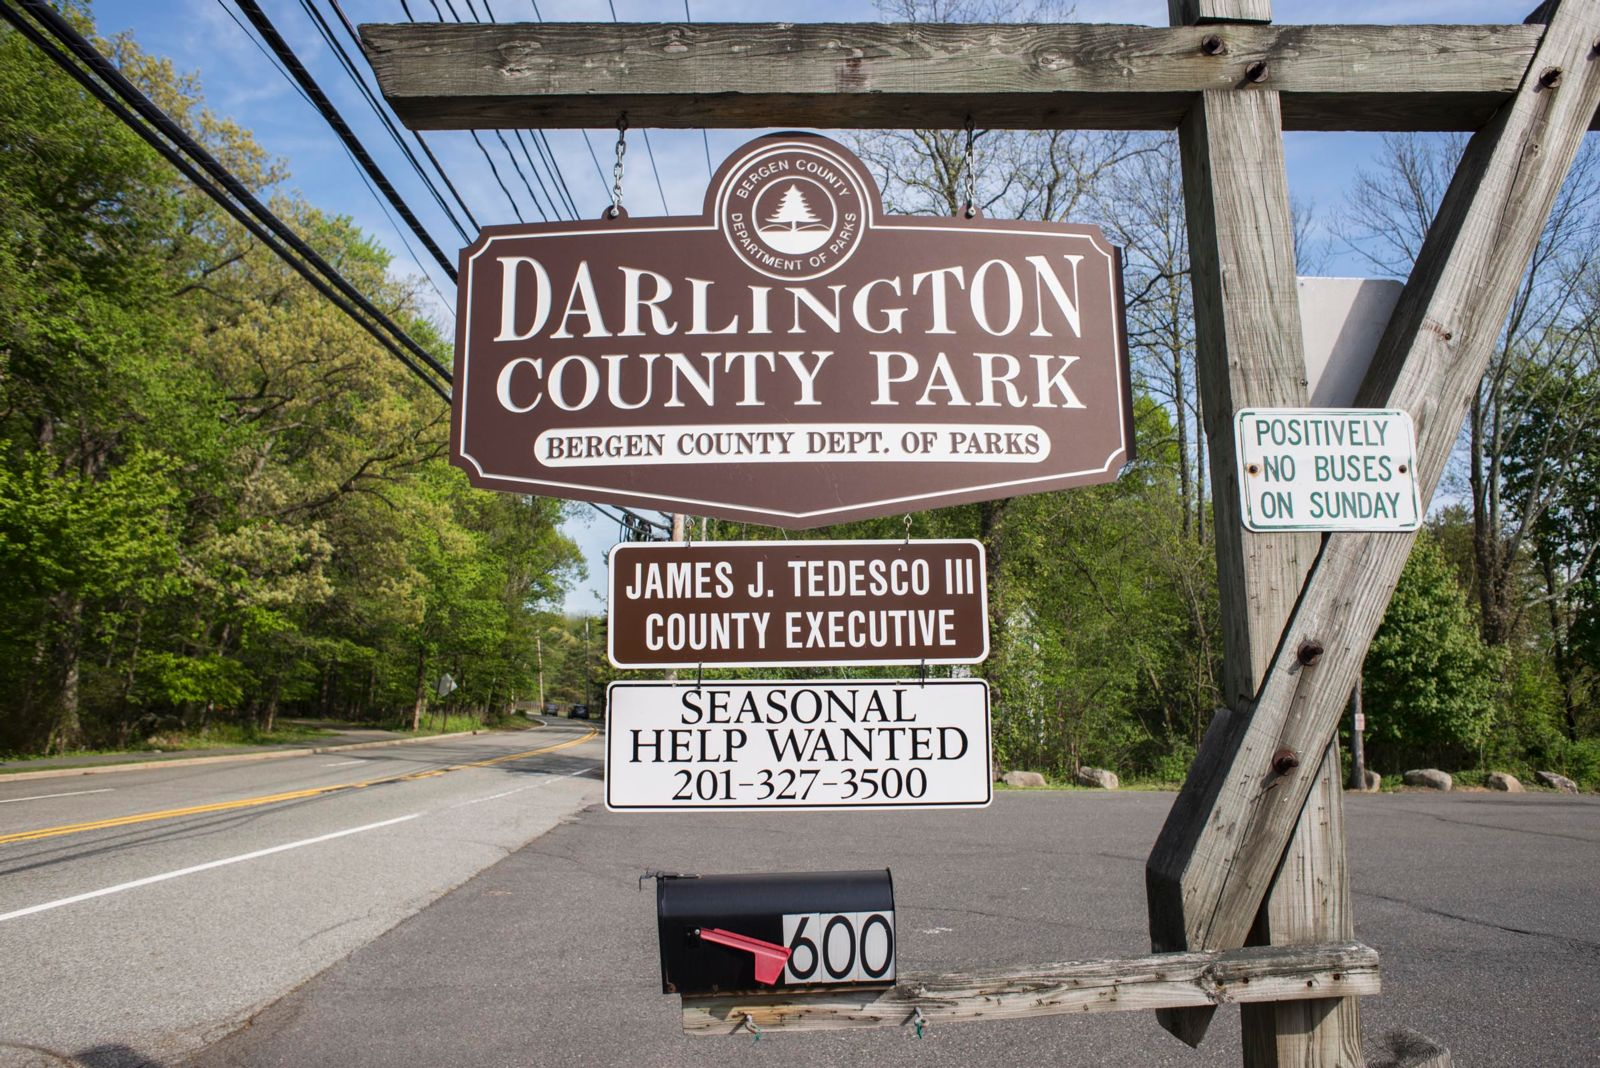 Darlington County Park Welcome Signs